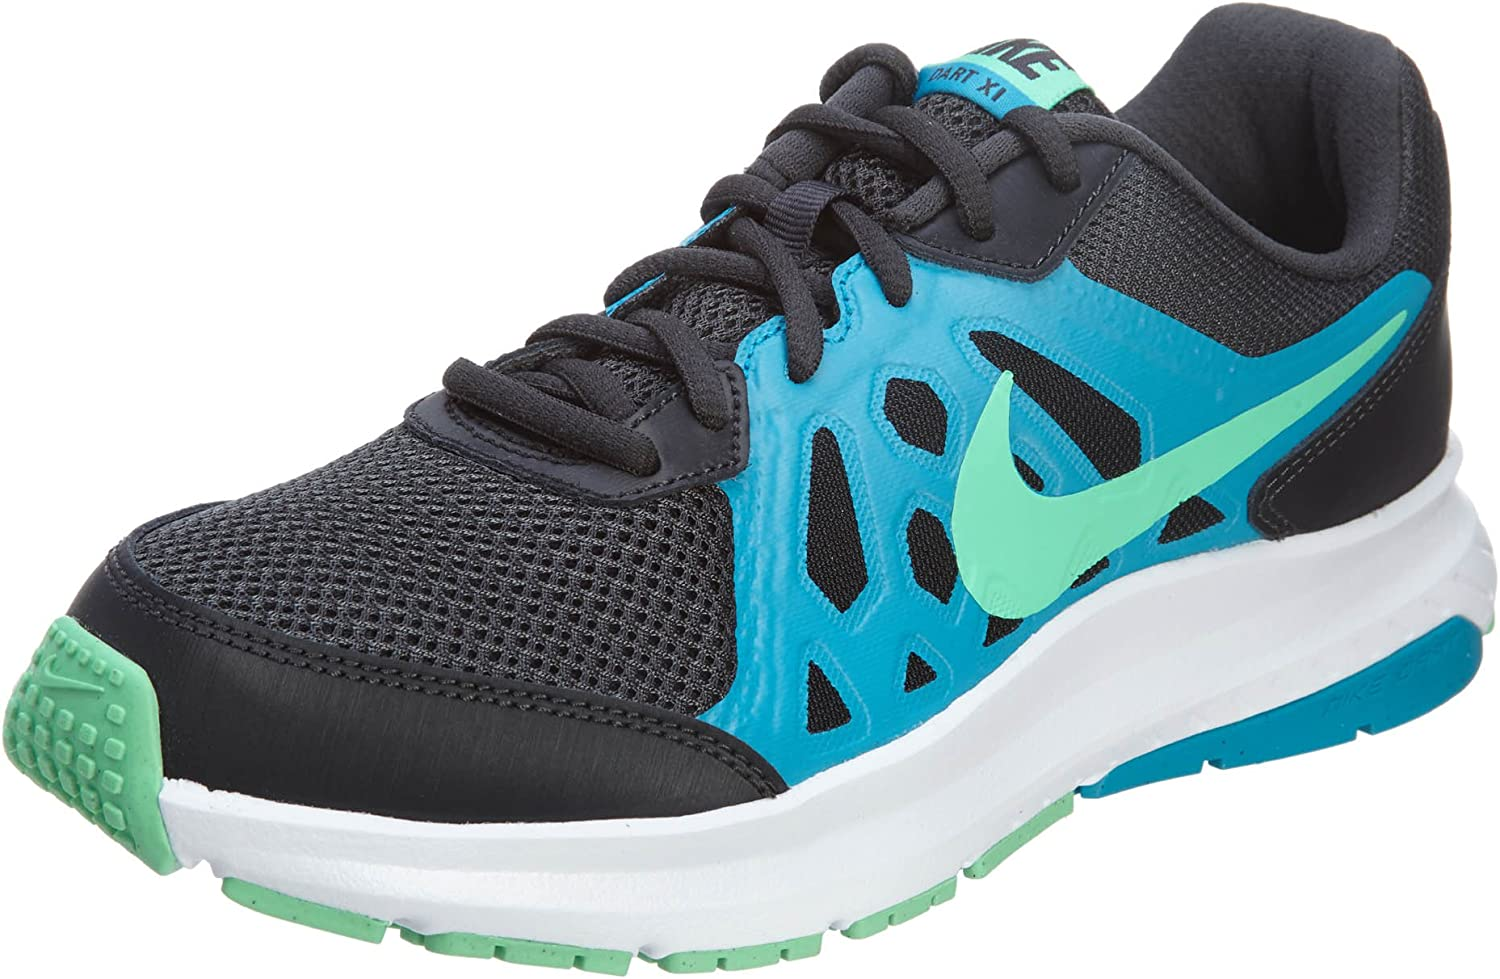 724940 Ankle-High Fabric Running Shoe